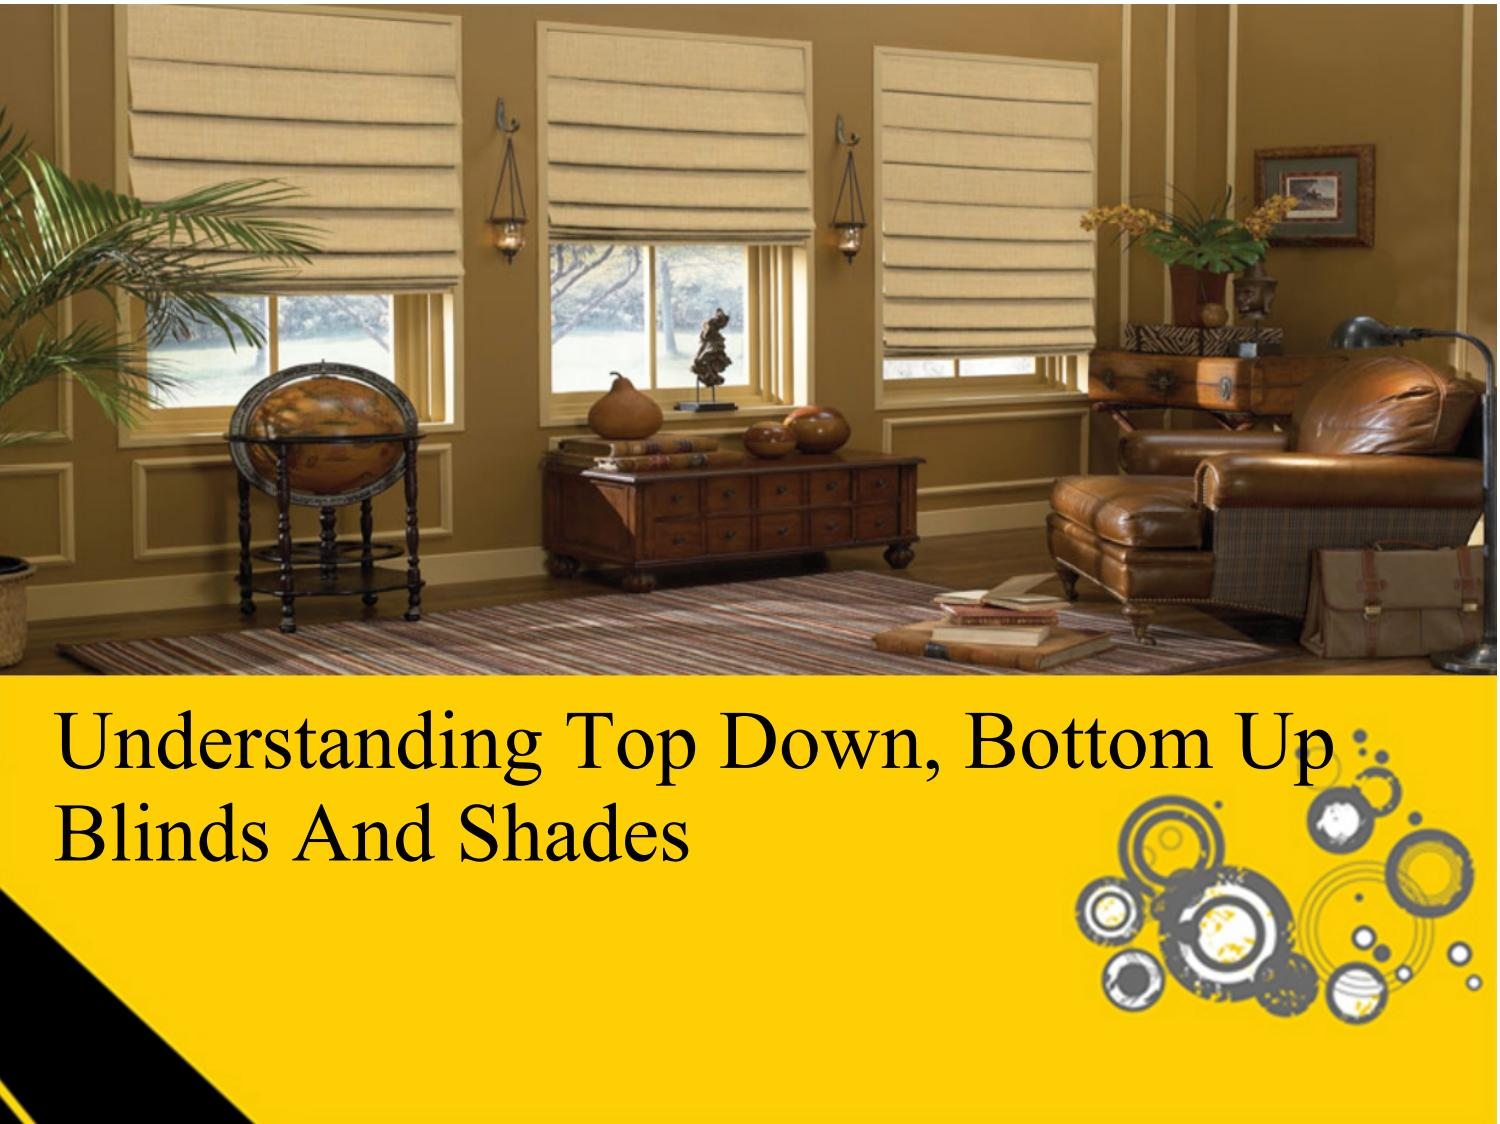 Understanding Top Down Bottom Up Blinds And Shades By Clara Jp Issuu